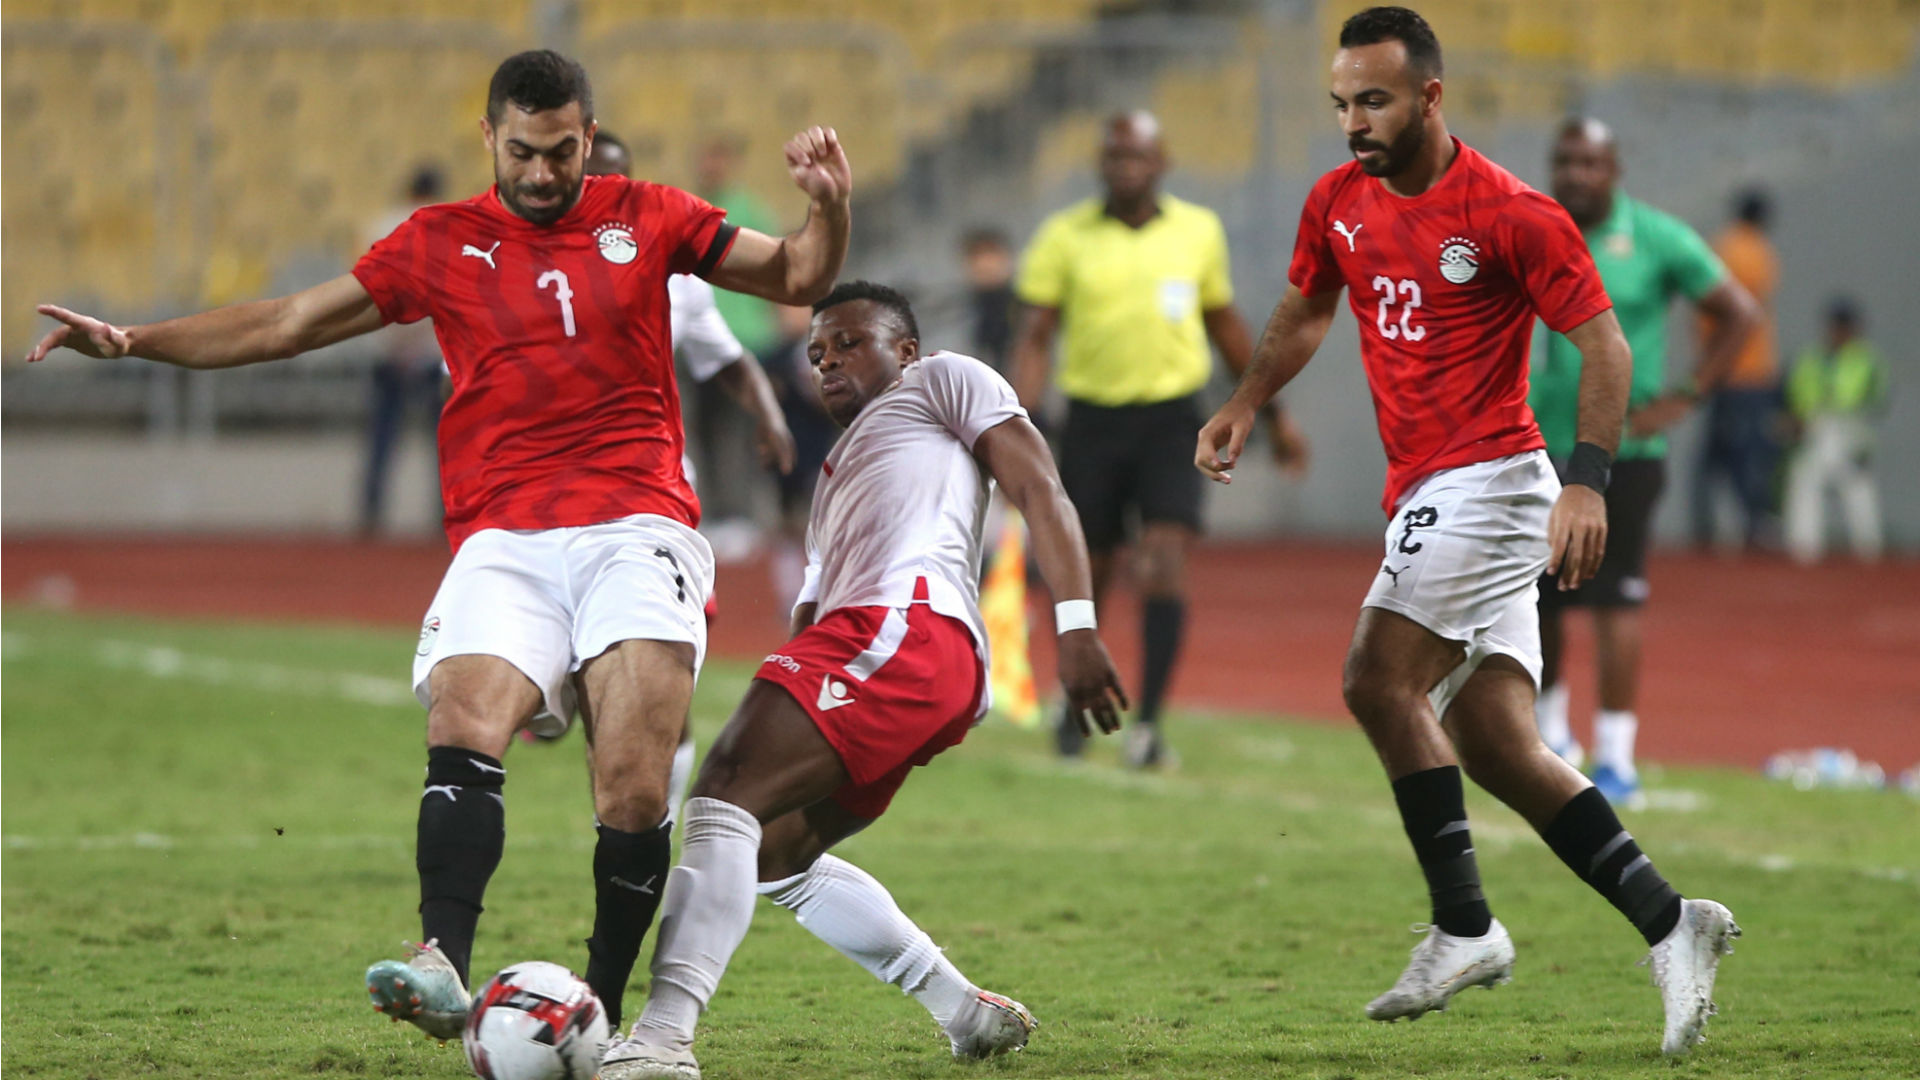 Egypt's Ahmed Fathi (L) in action against Kenya and Harambee Stars player Ayub Timbe.